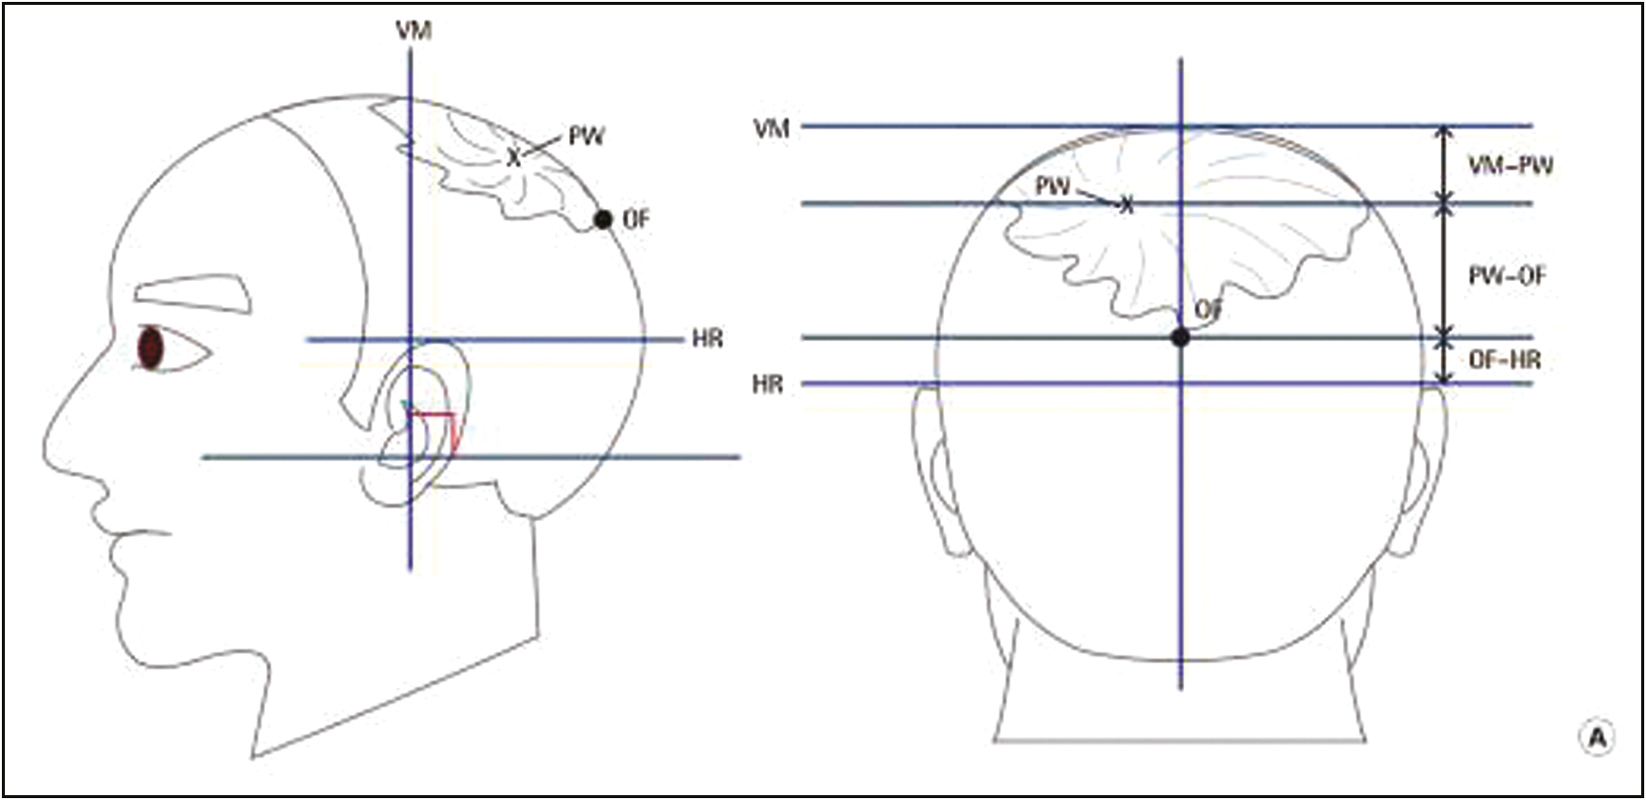 Figure 2: Landmarks for measurement of parietal whorl position